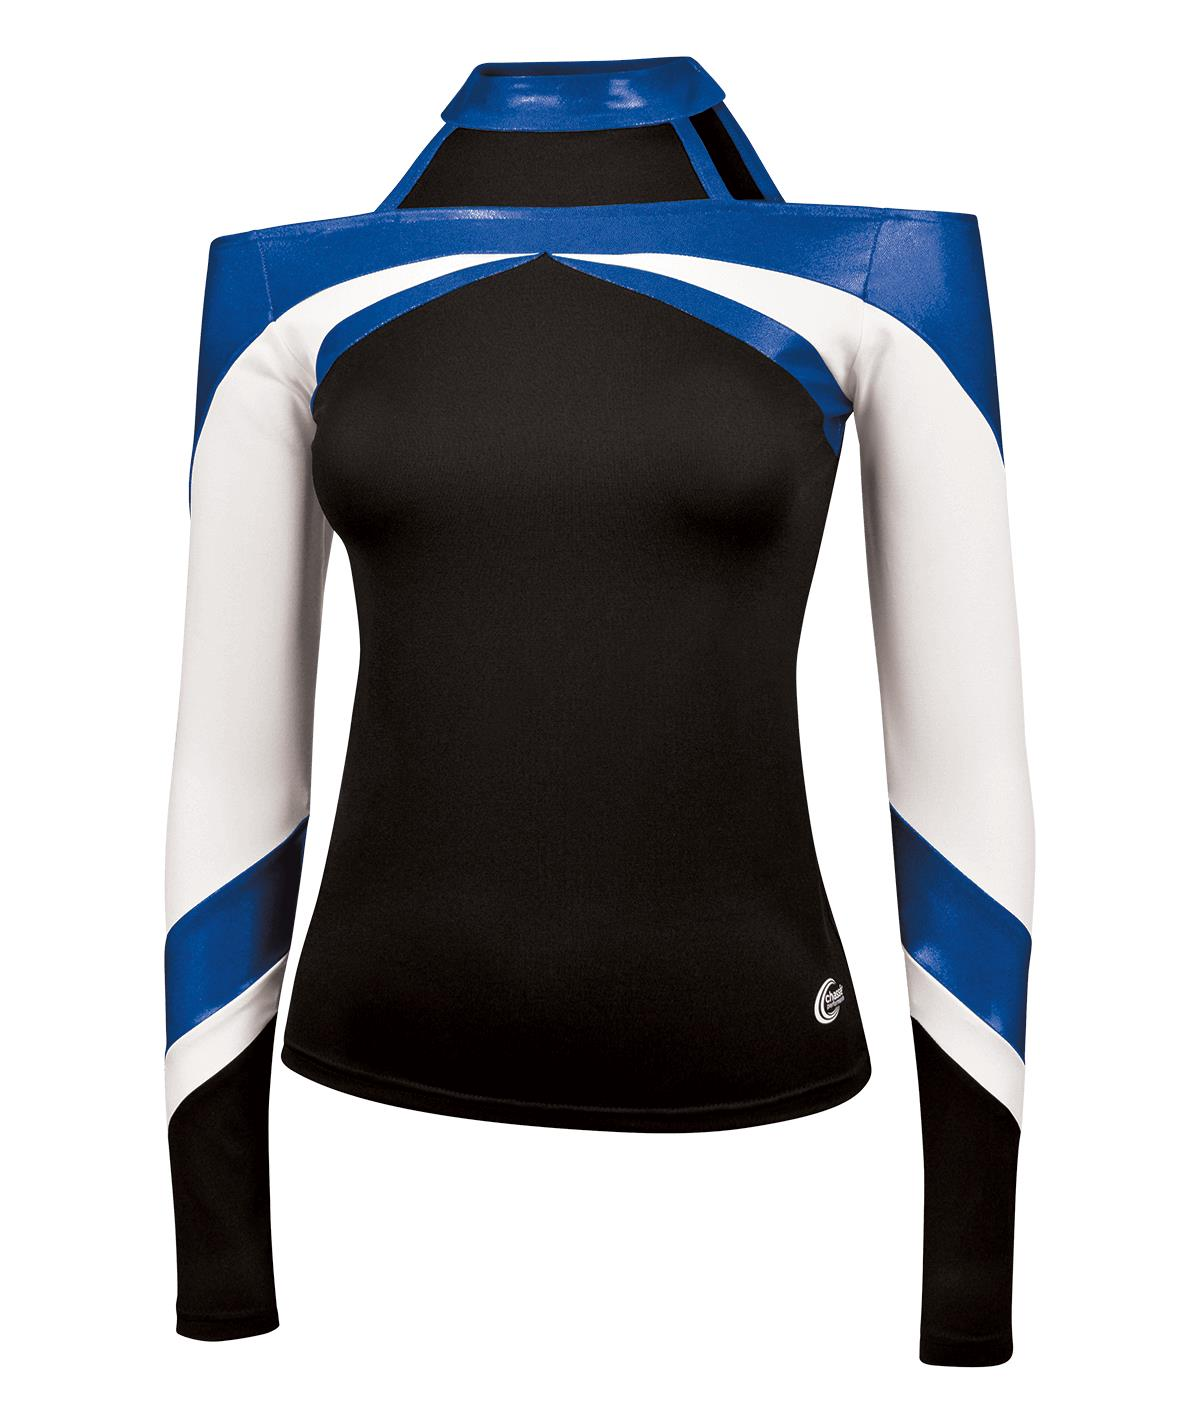 Chassé Performance Force Top